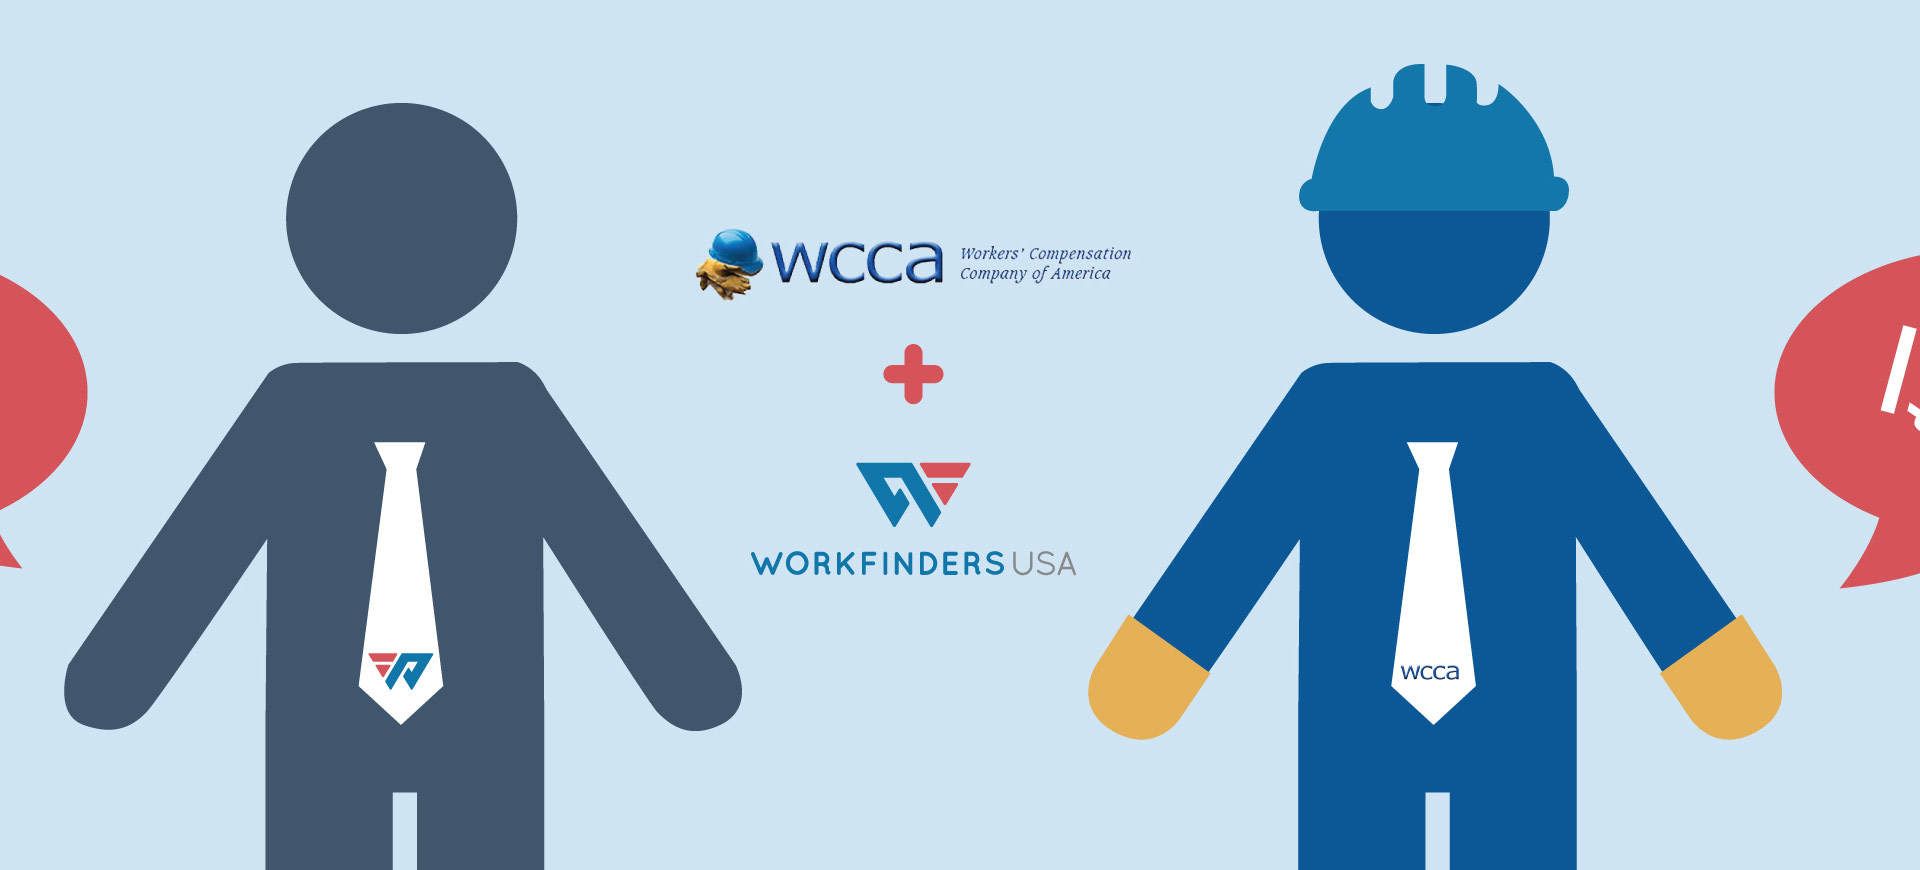 Workfinders USA Partners with WCCA